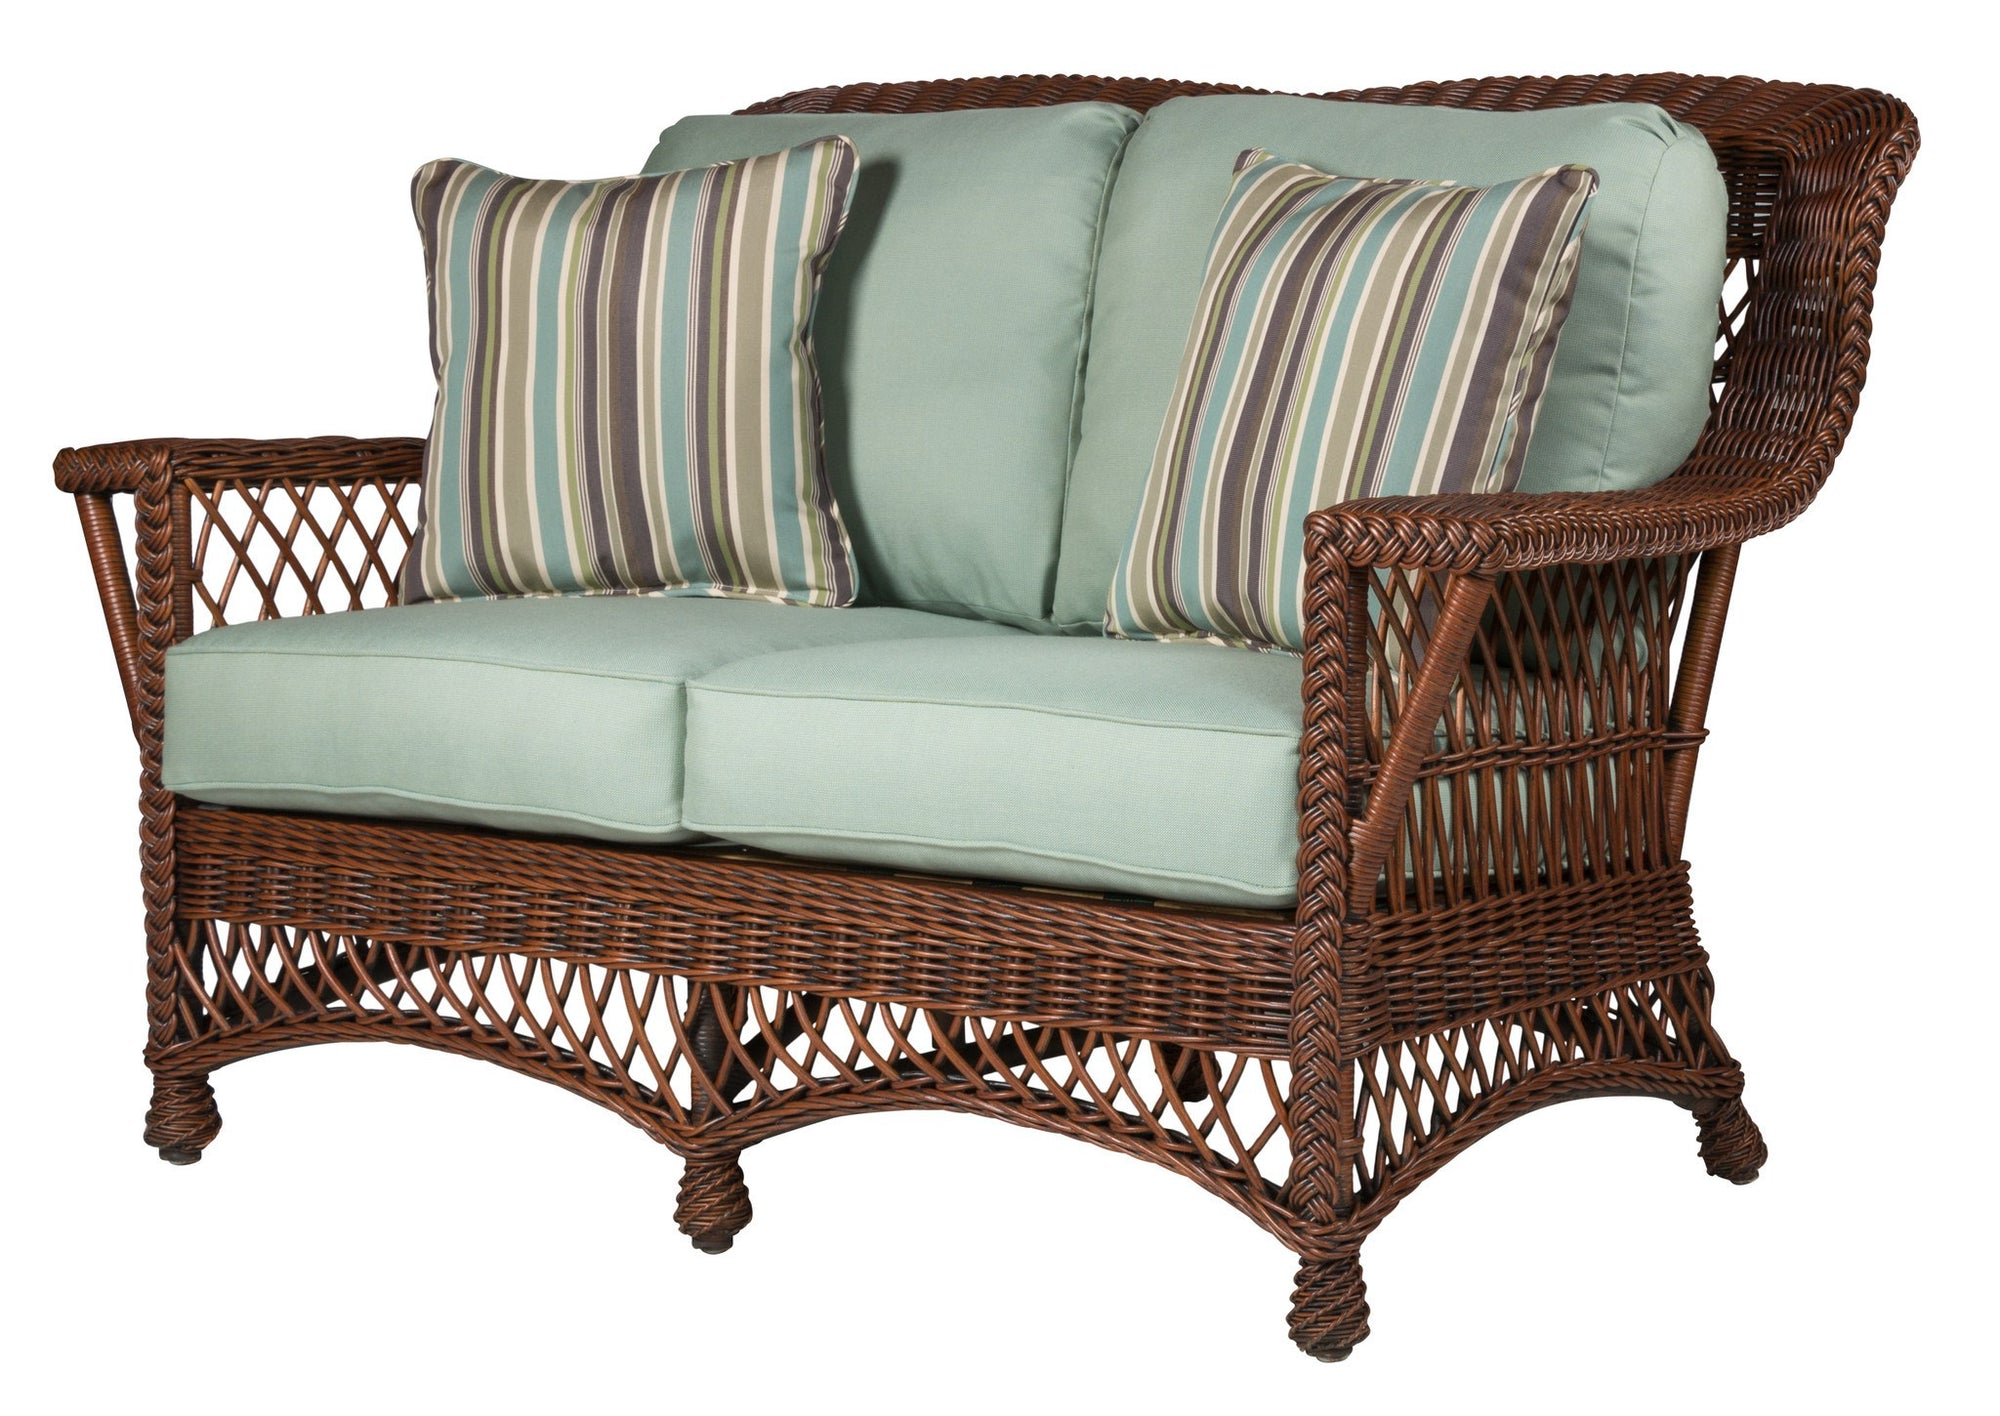 Designer Wicker & Rattan By Tribor Rockport Loveseat by Designer Wicker from Tribor Loveseat - Rattan Imports